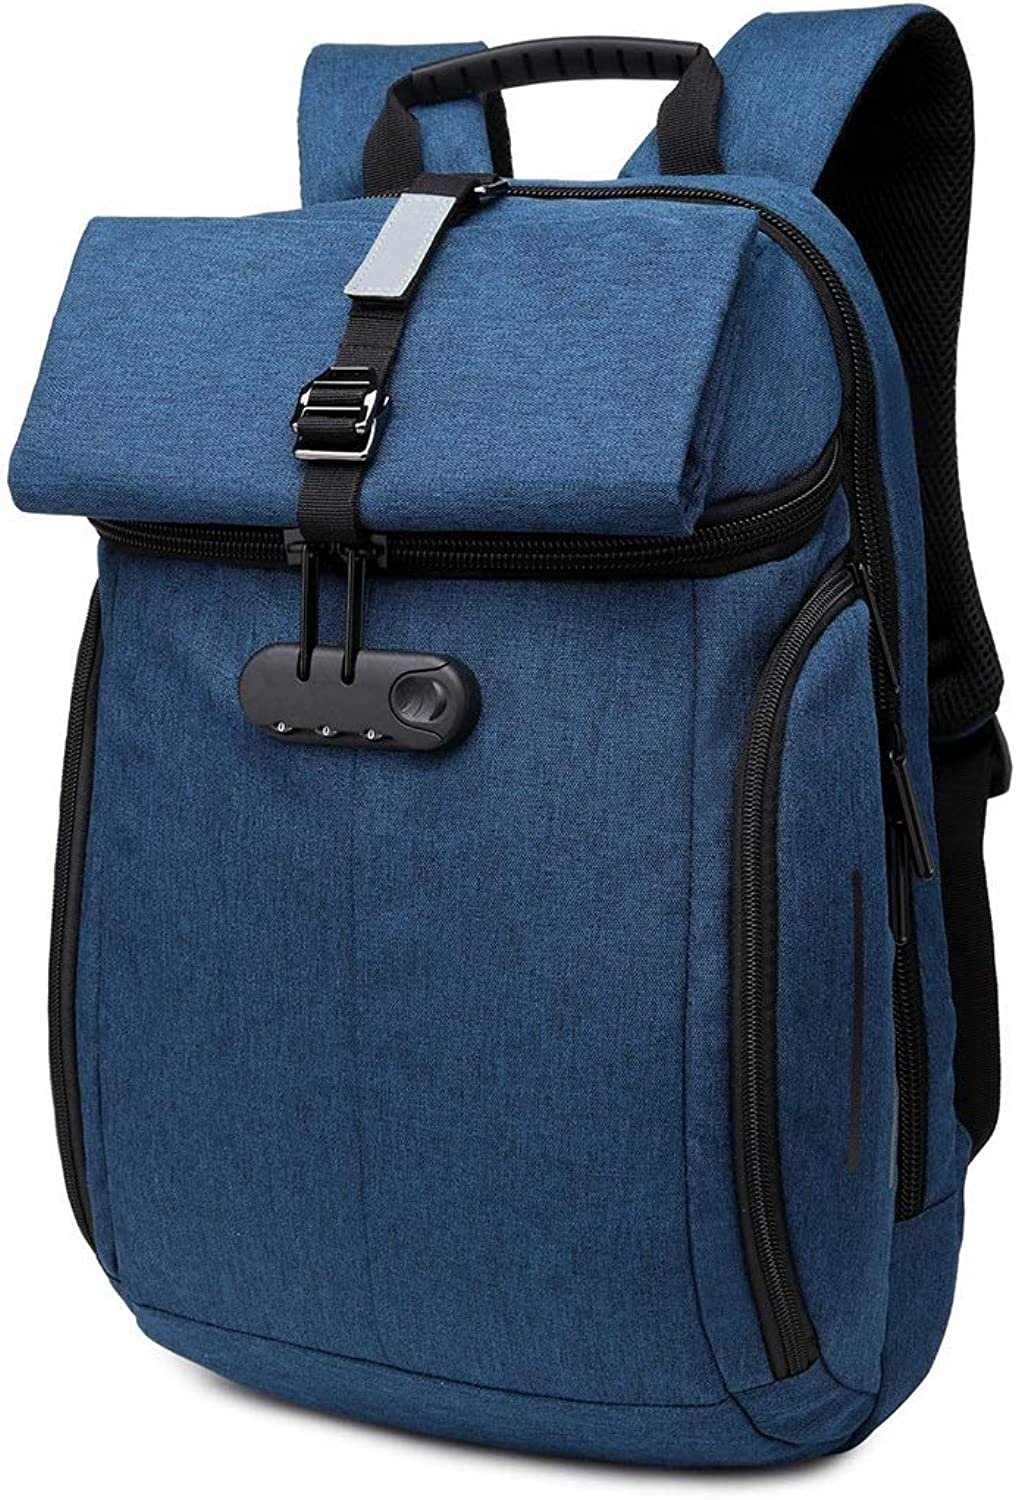 Carriemeow Men's Travel Backpack AntiTheft Lock Student Bag Casual Waterproof Oxford Cloth Laptop Daypack Commerce Business Trip Men Backpack (color   blueee)